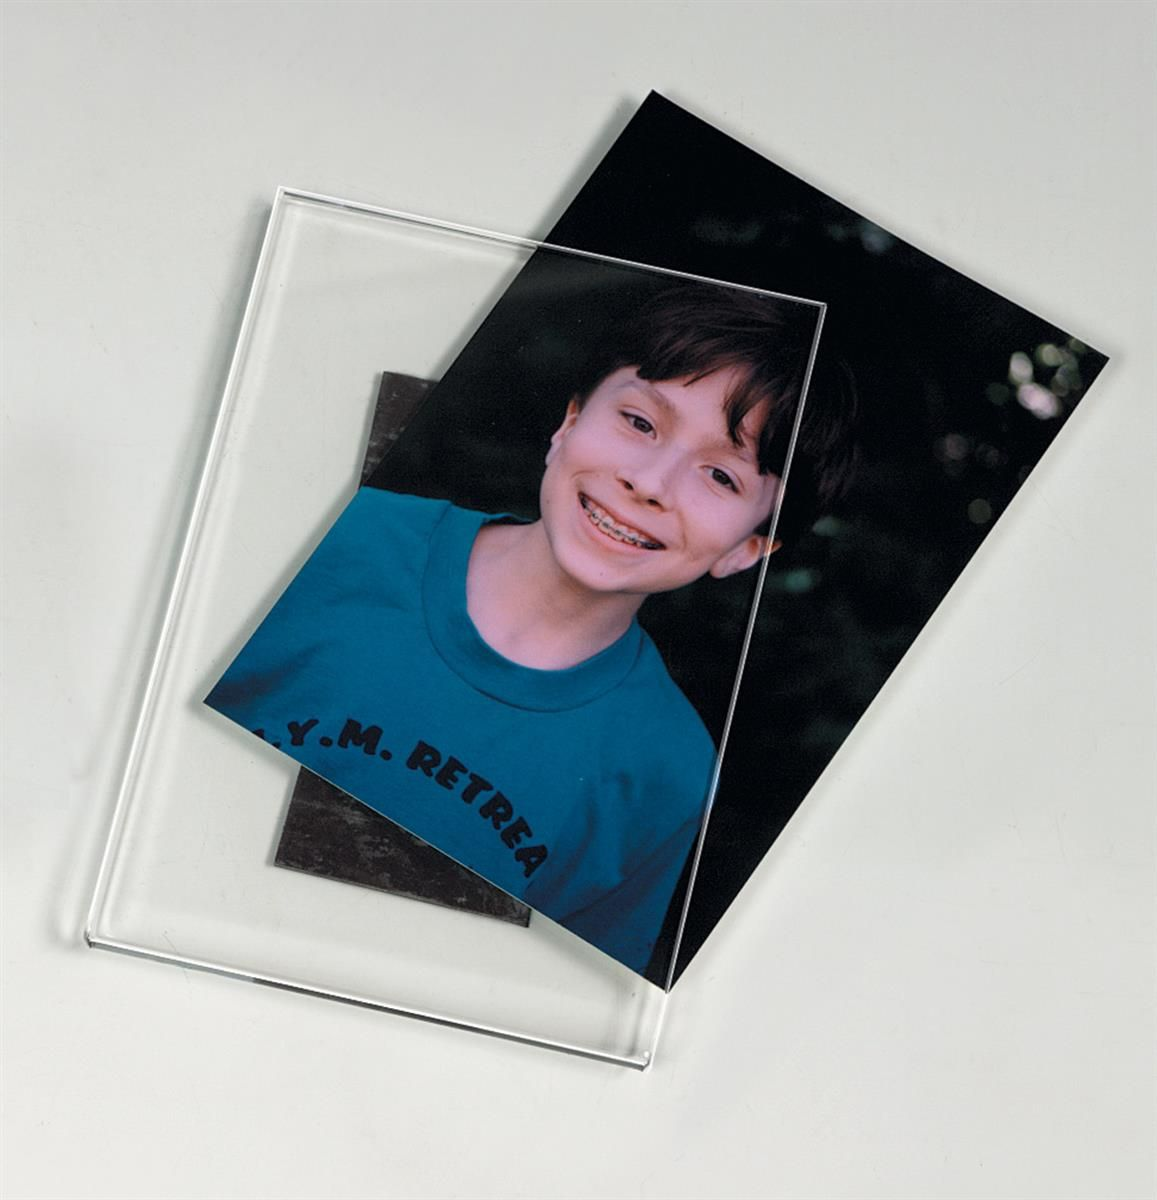 Workshop Series 4 X 6 Acrylic Picture Frame With Magnetic Backer